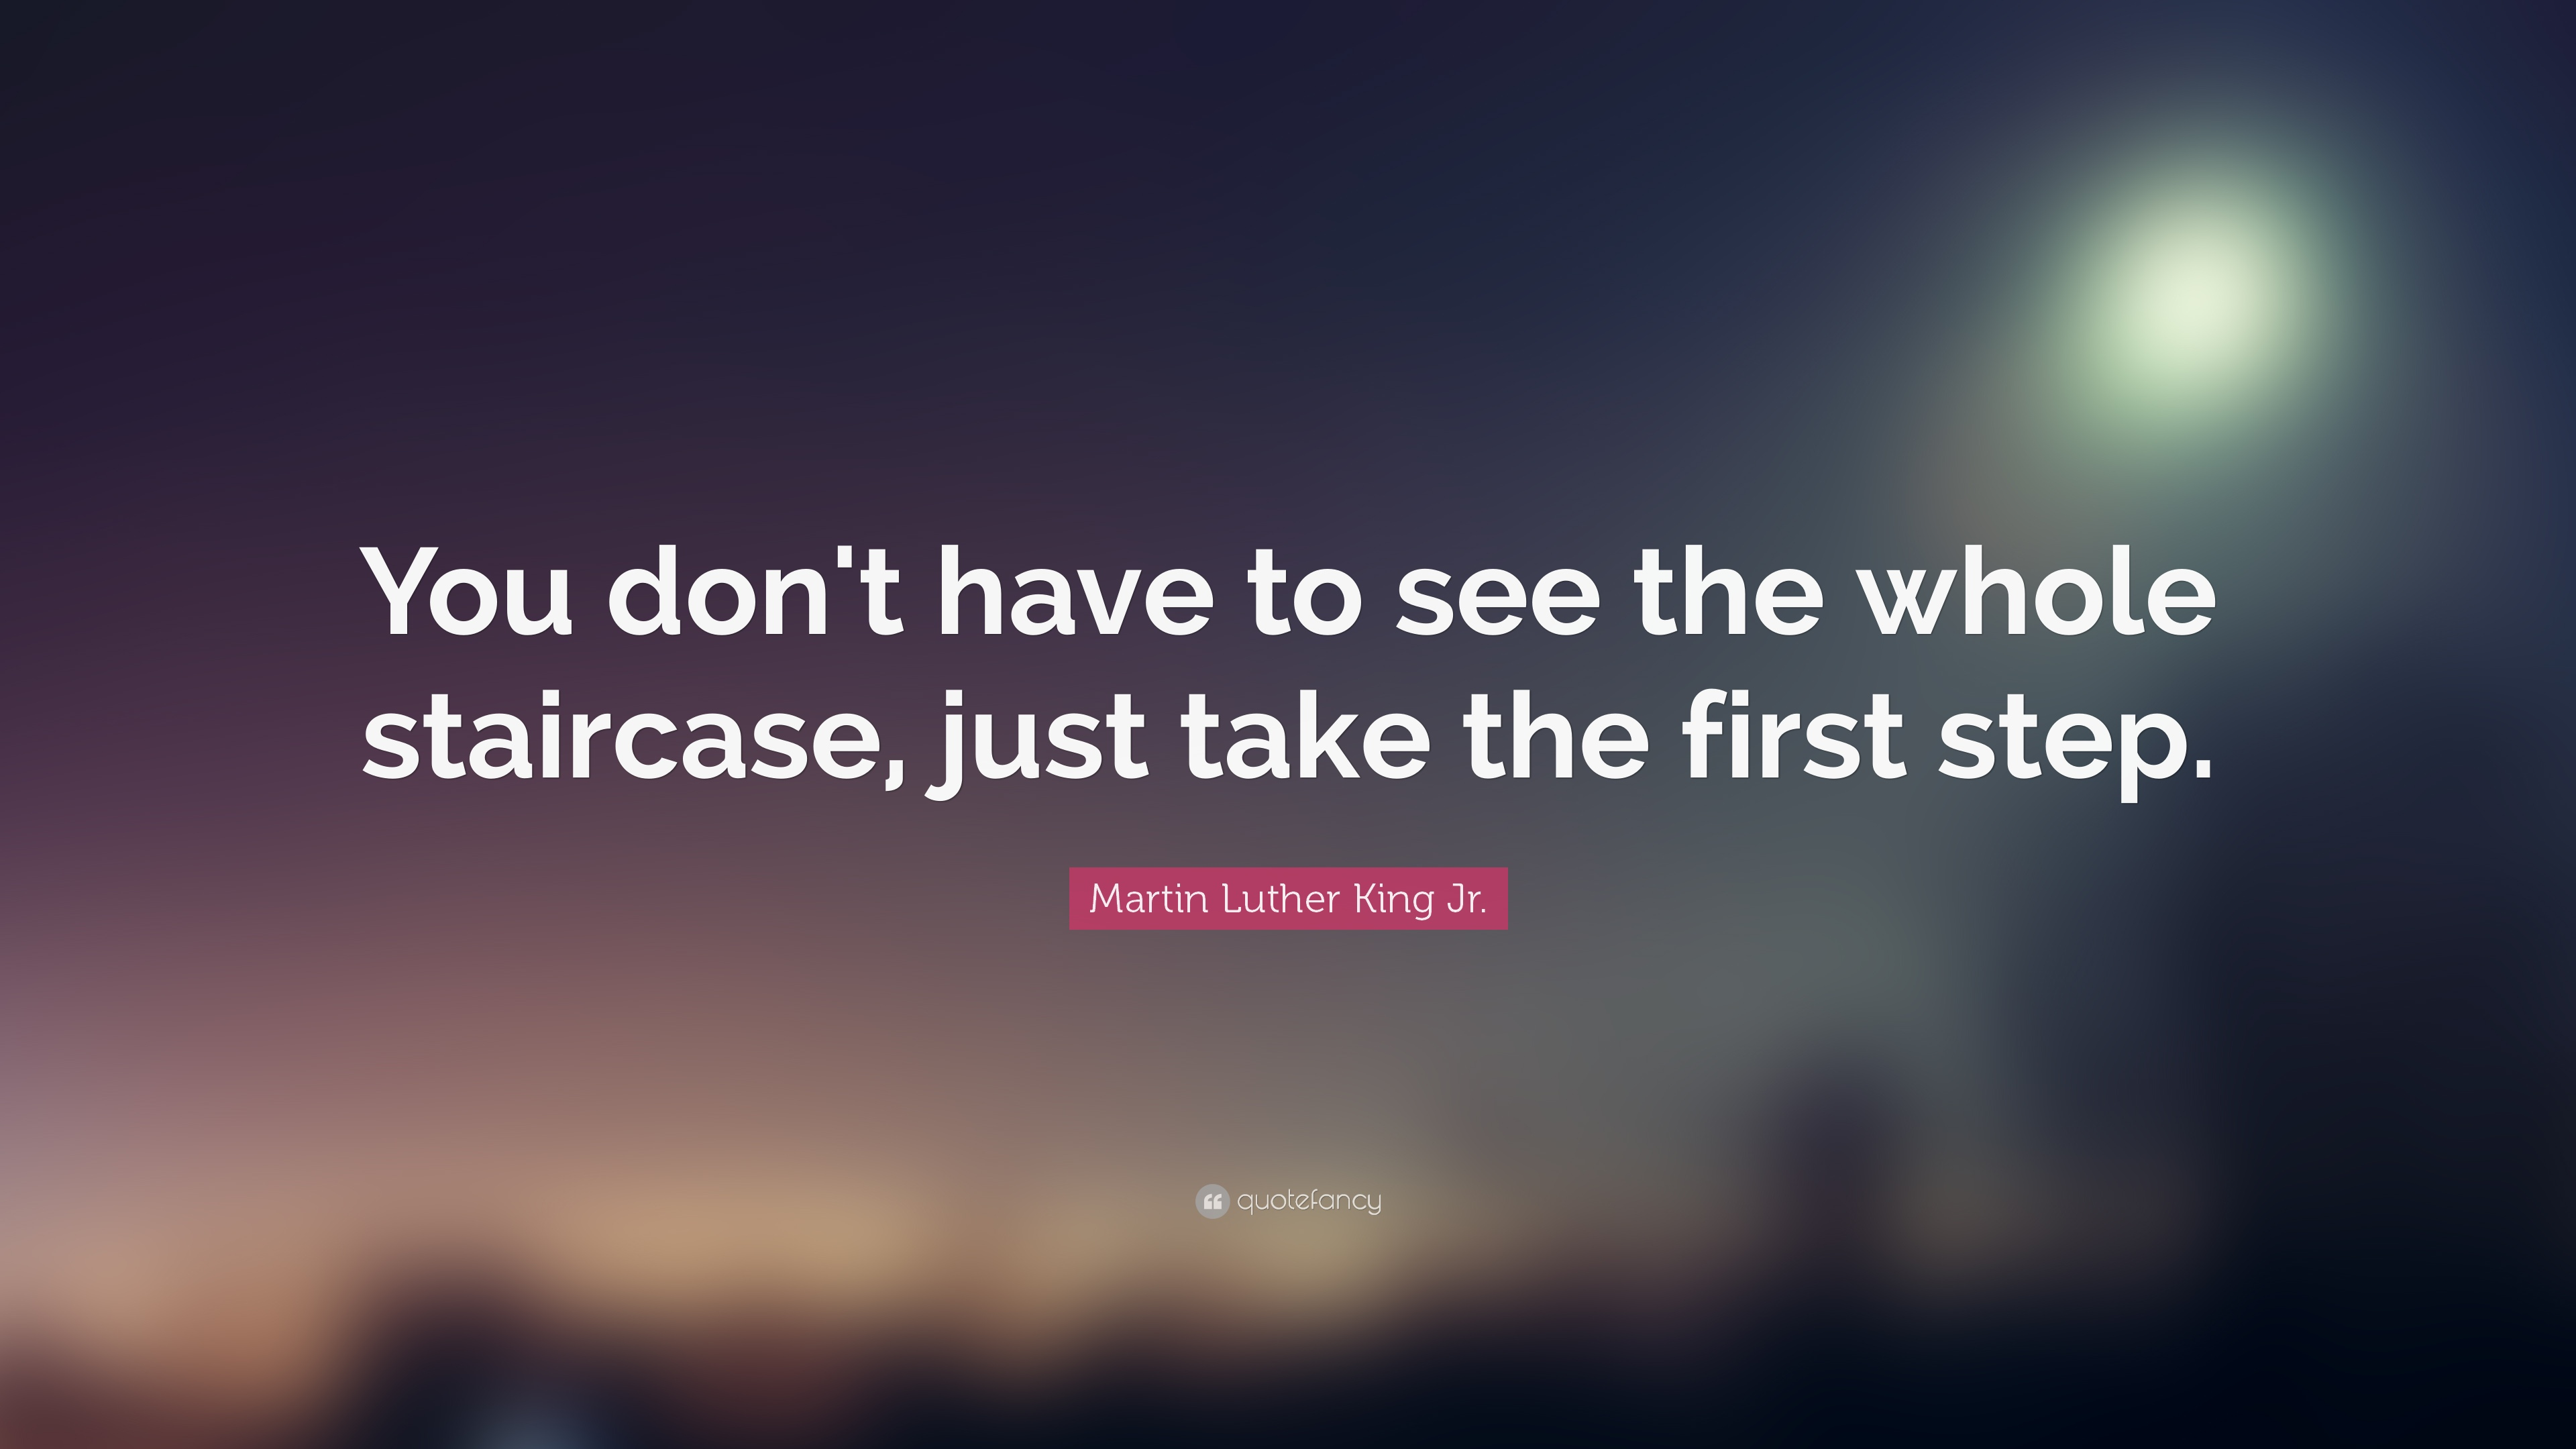 Martin Luther King Jr Quote You Dont Have To See The Whole